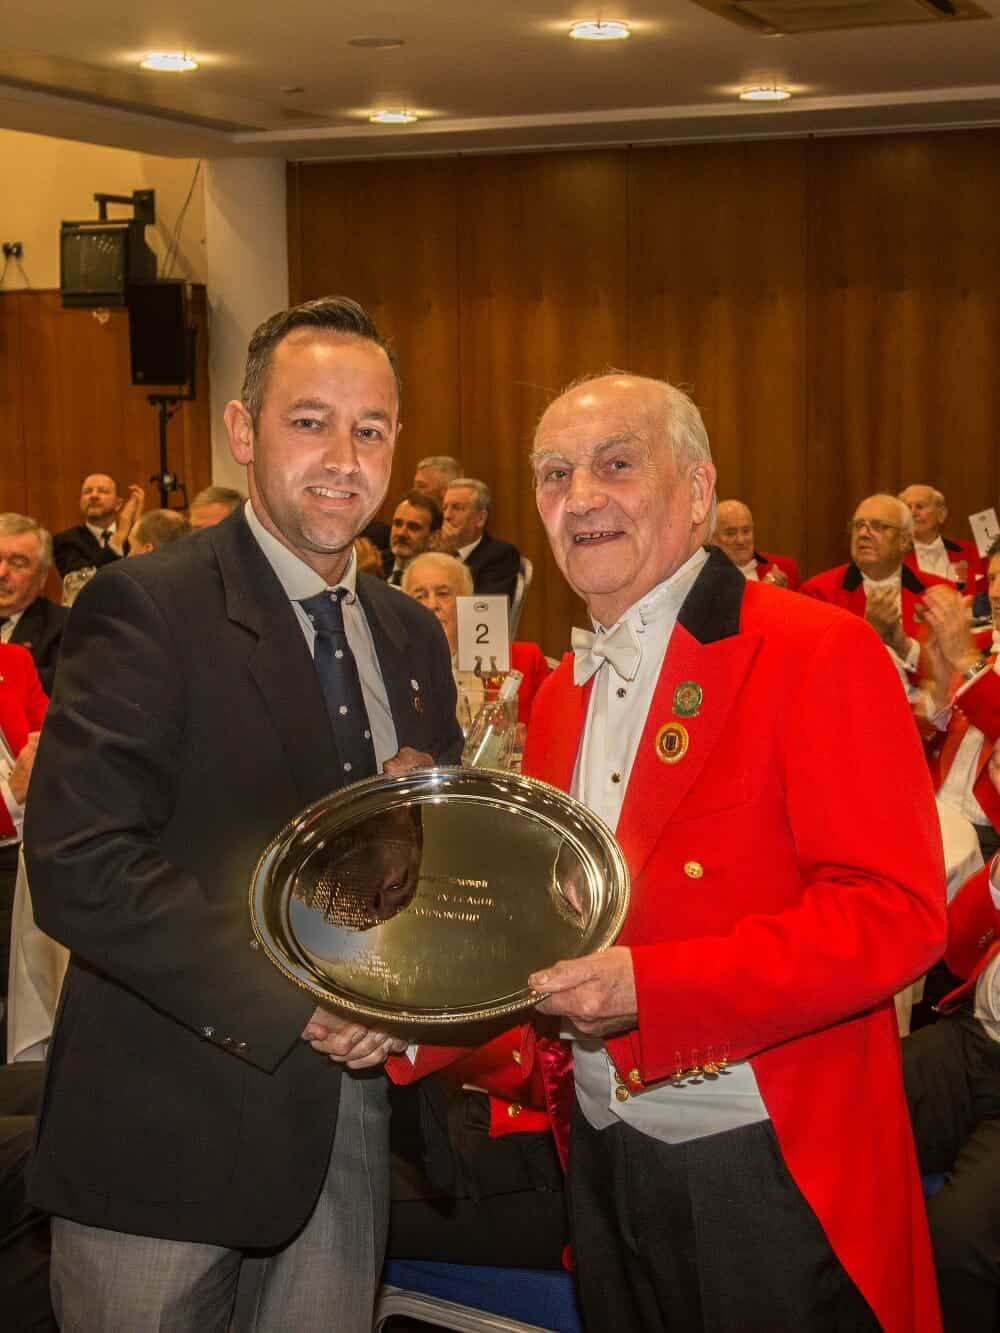 Clyde Camp presenting Northern Counties Salver to Darryl Berry